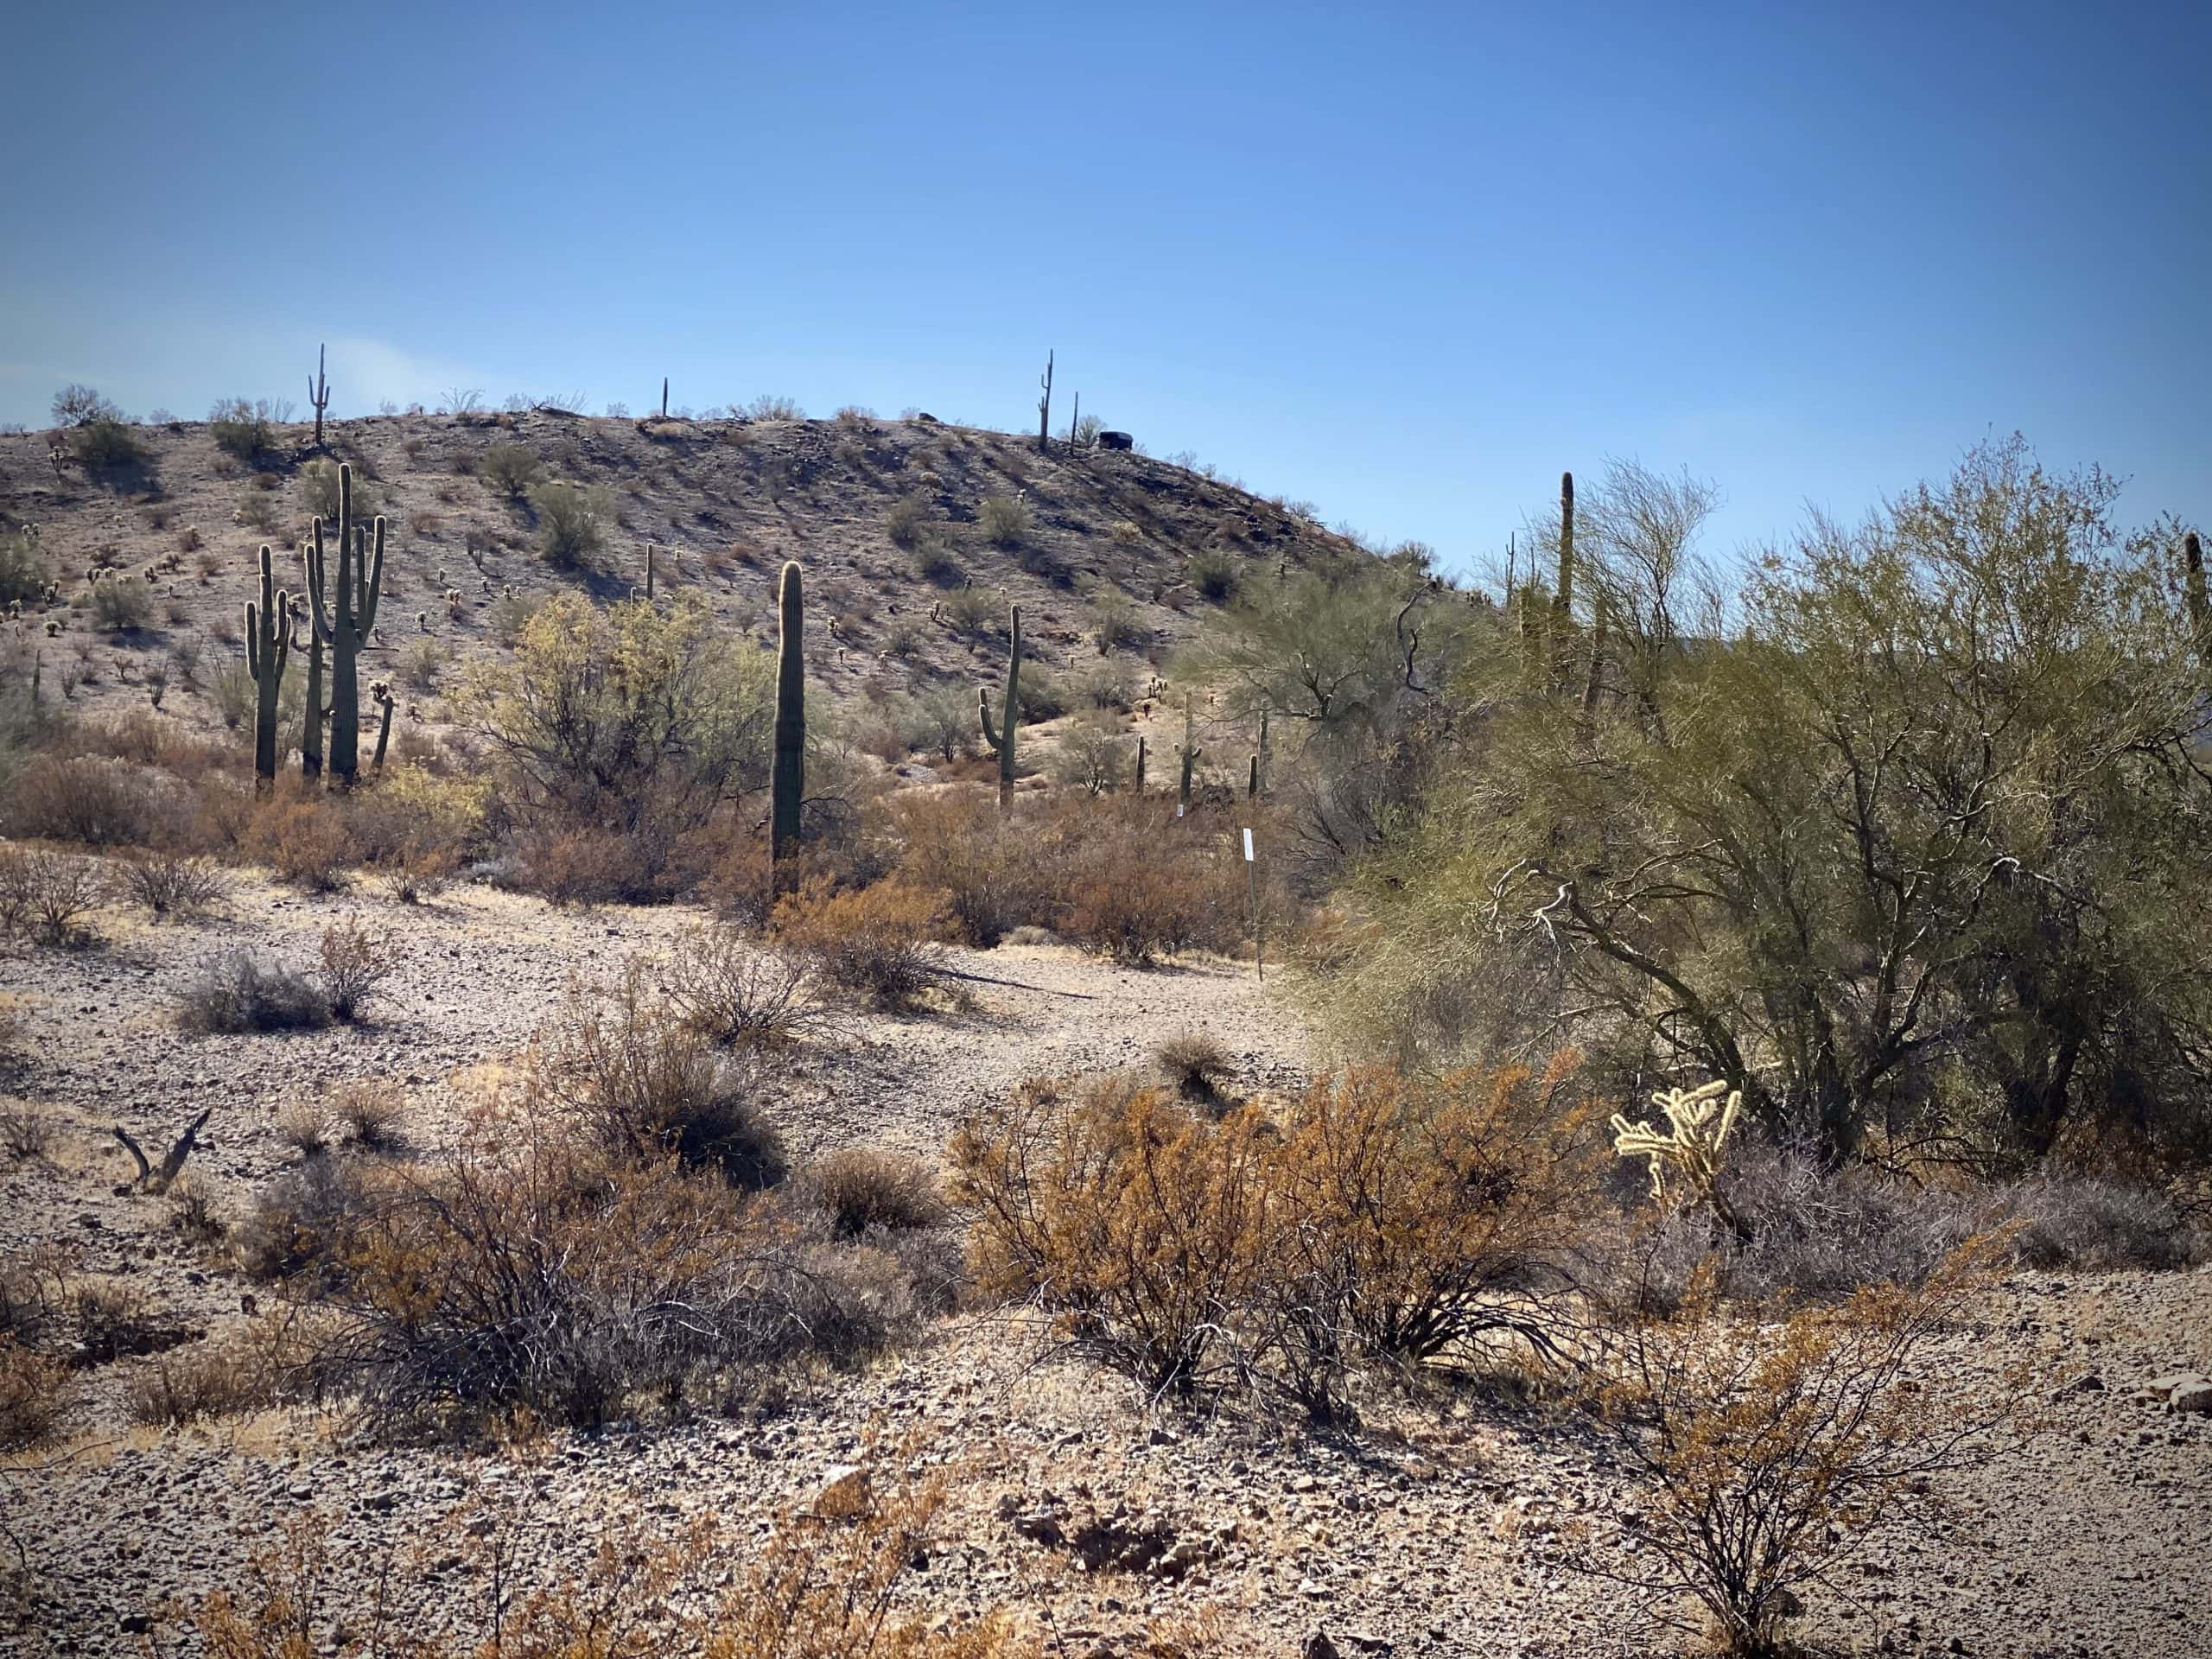 Rat Pack Hill with structure used for Sonoran Pronghorn wildlife management.